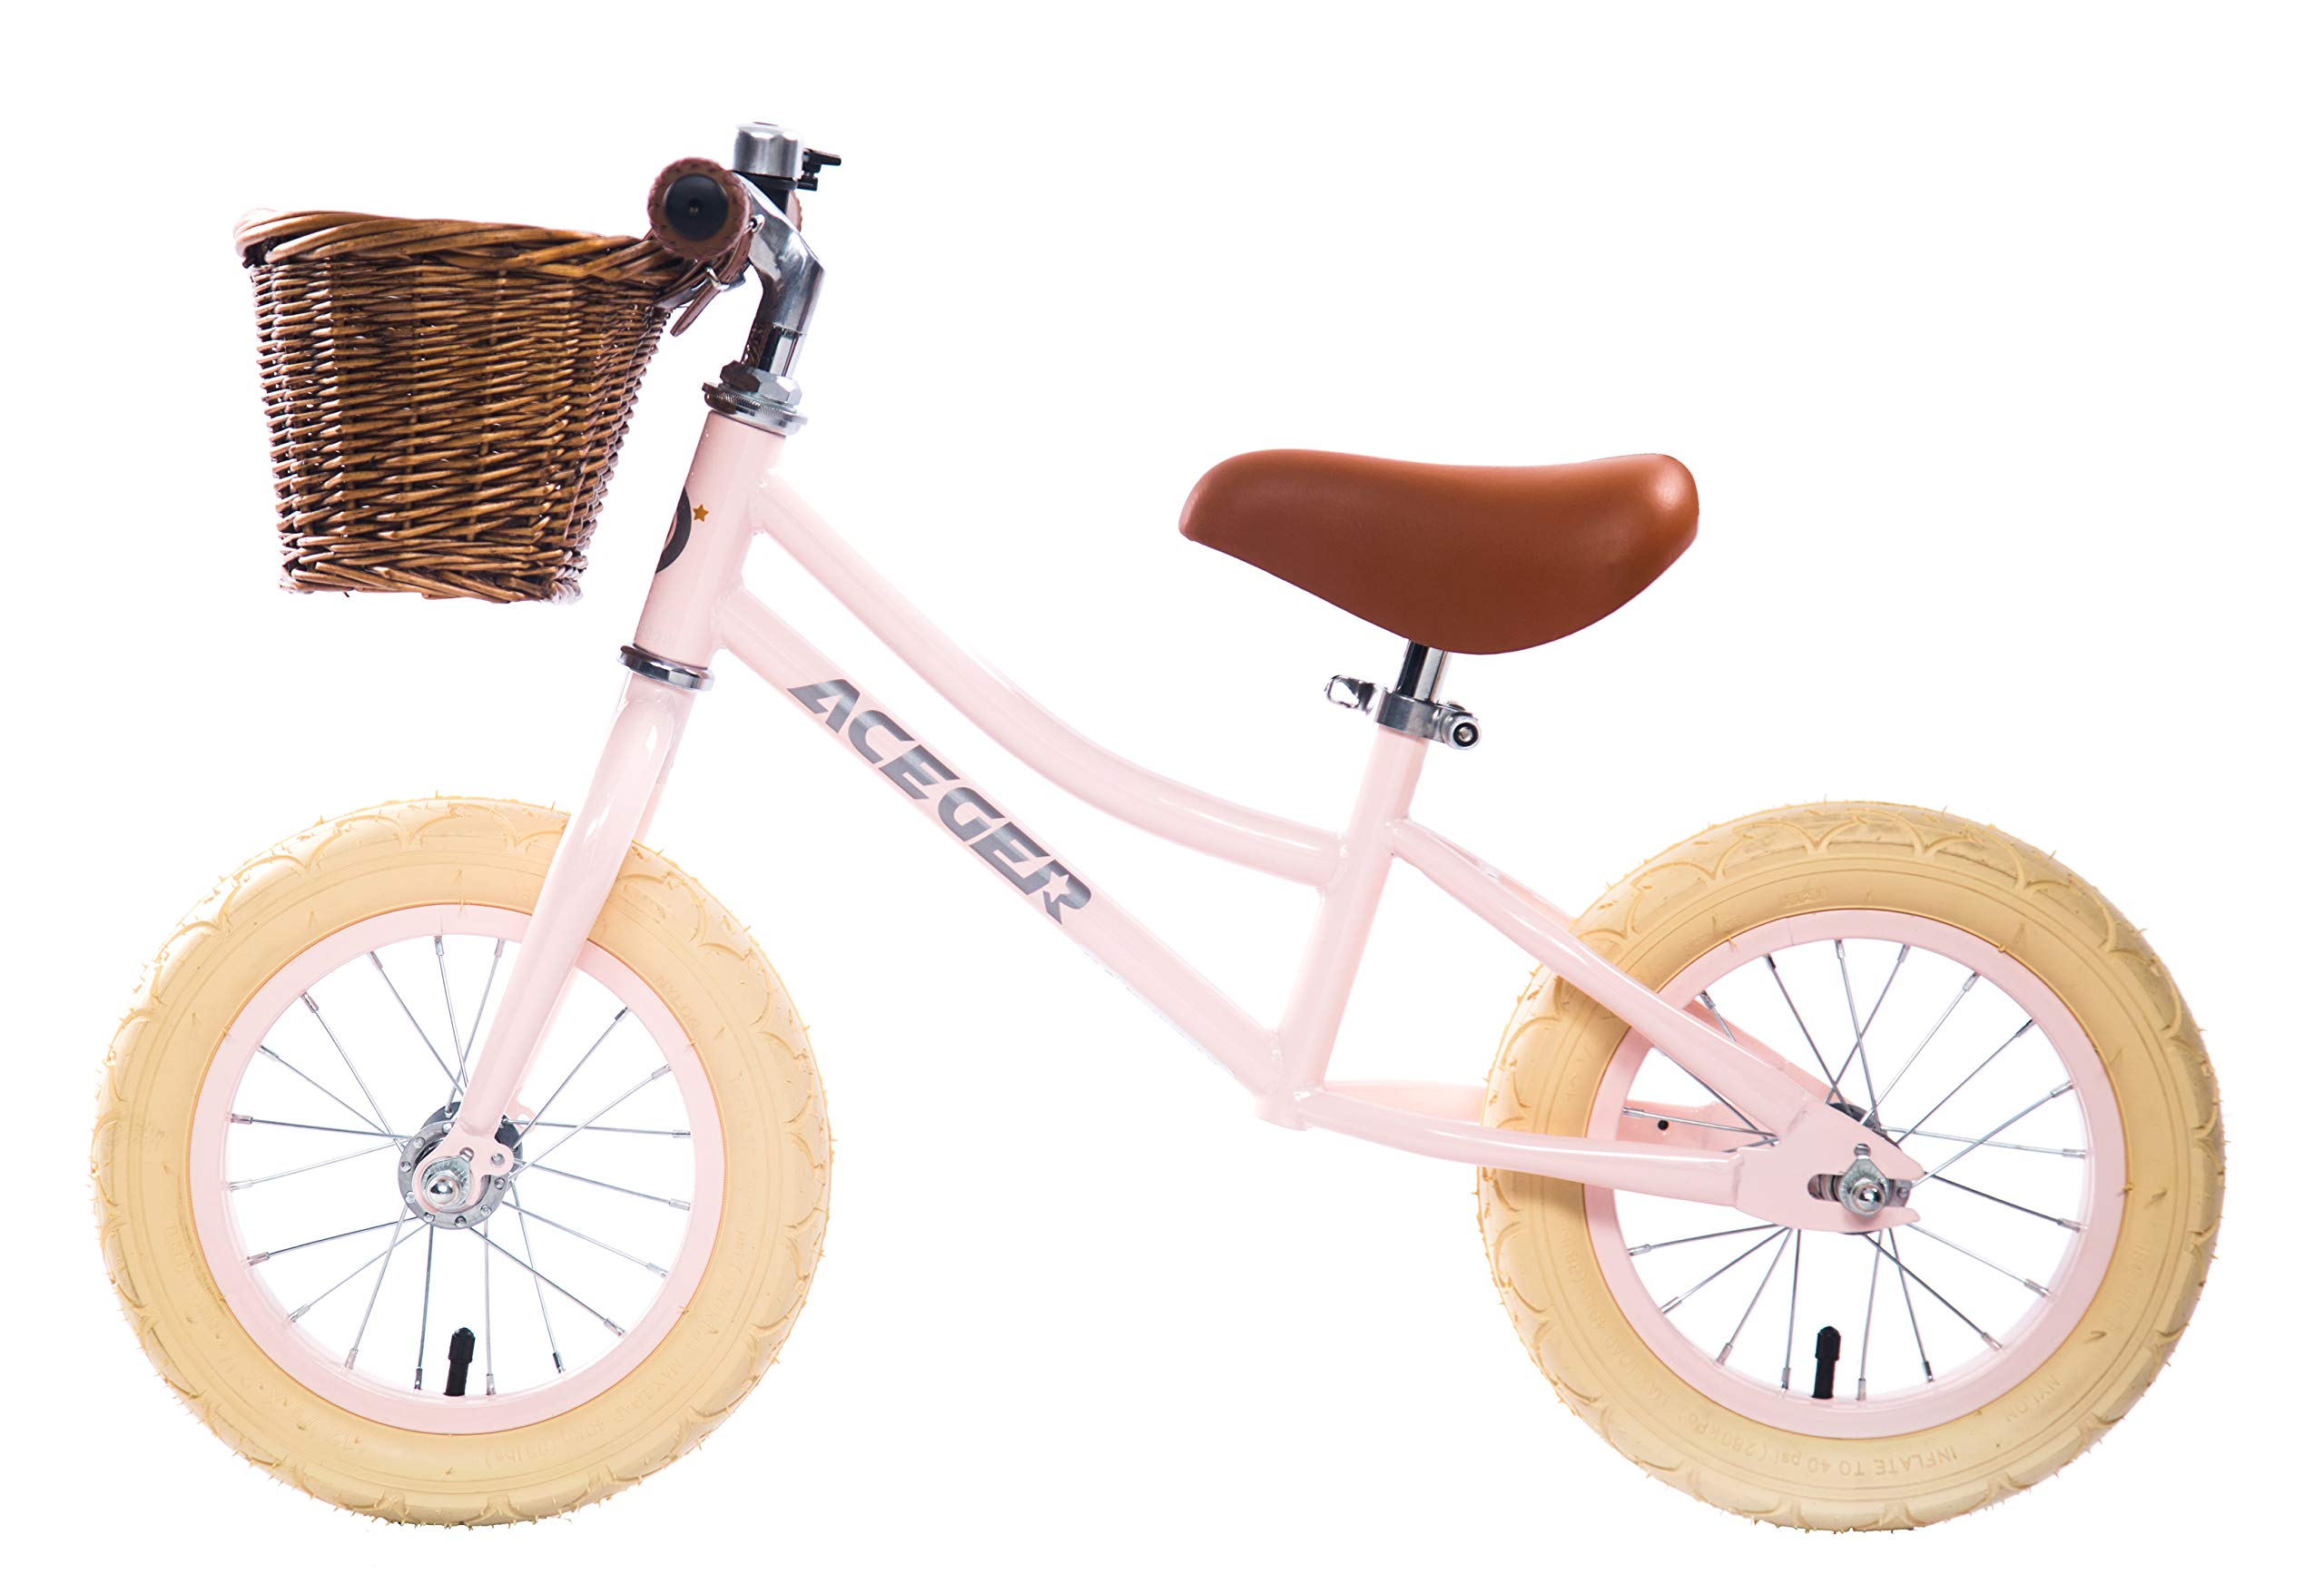 ACEGER Balance Bike with Basket for Kids, Ages 2 to 5 Years(Pink